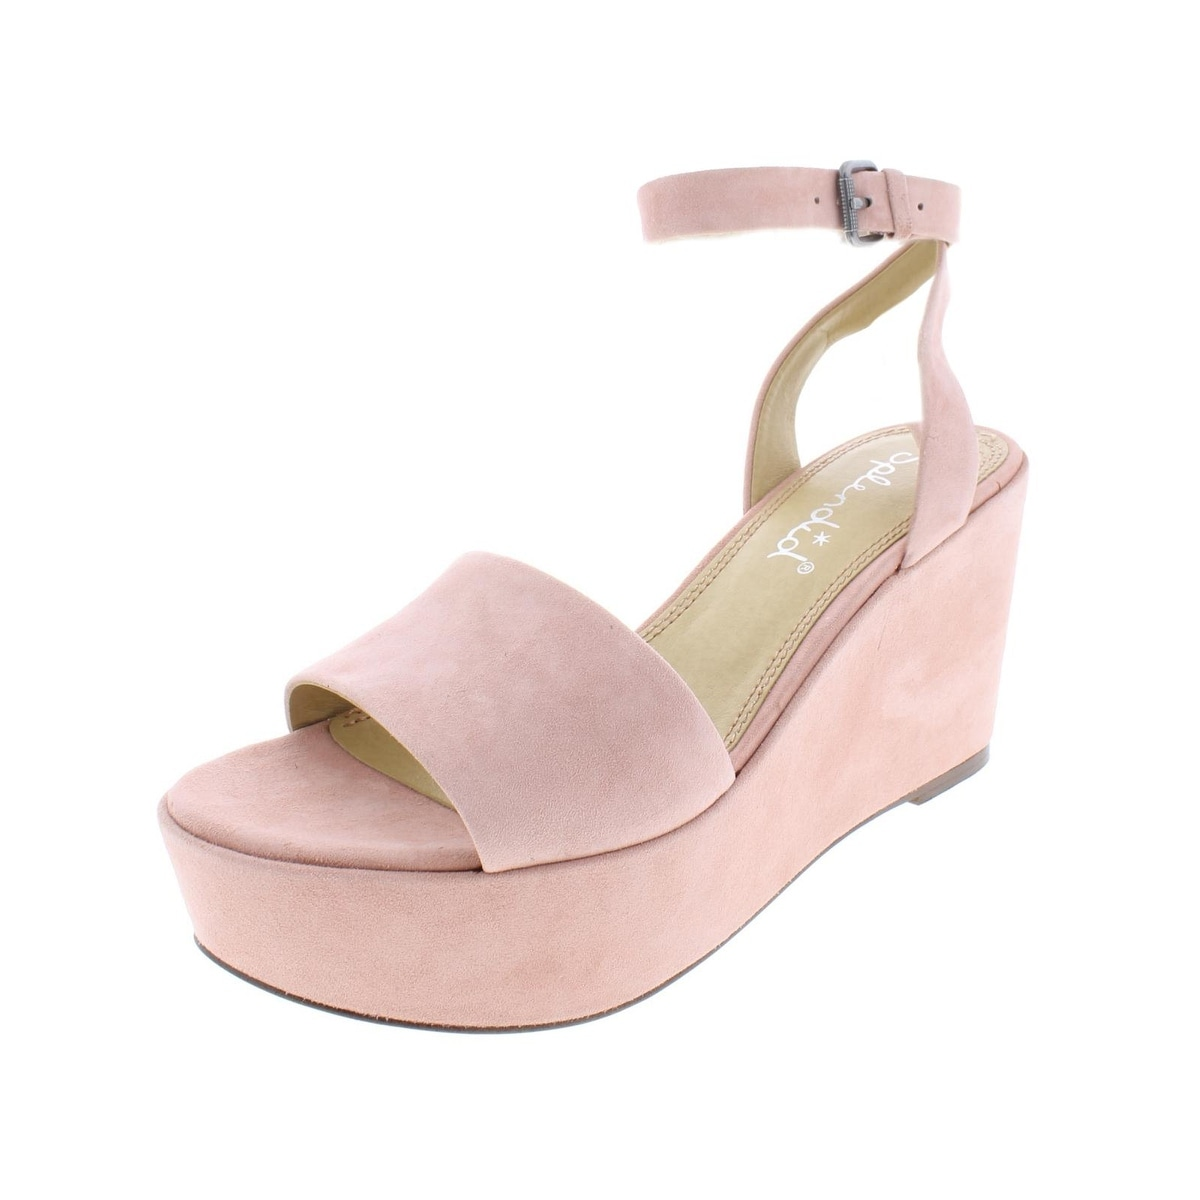 9e831fbeca Splendid Women's Shoes | Find Great Shoes Deals Shopping at Overstock